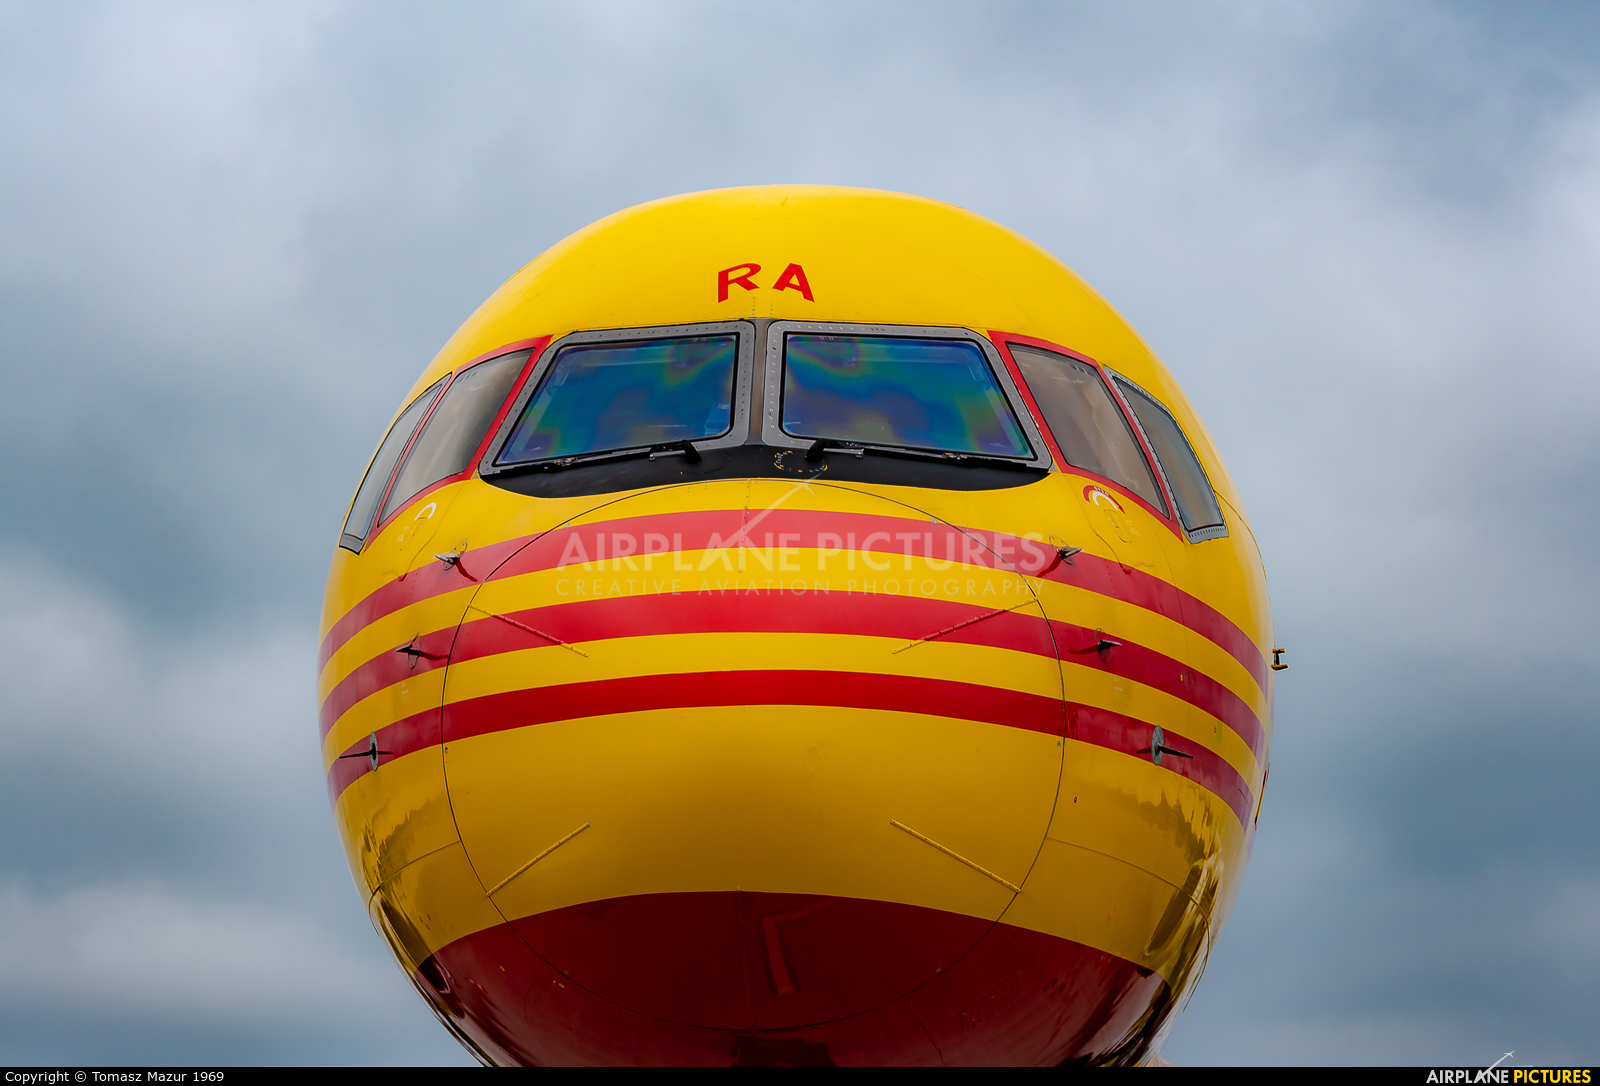 DHL Cargo G-DHKD aircraft at Katowice - Pyrzowice